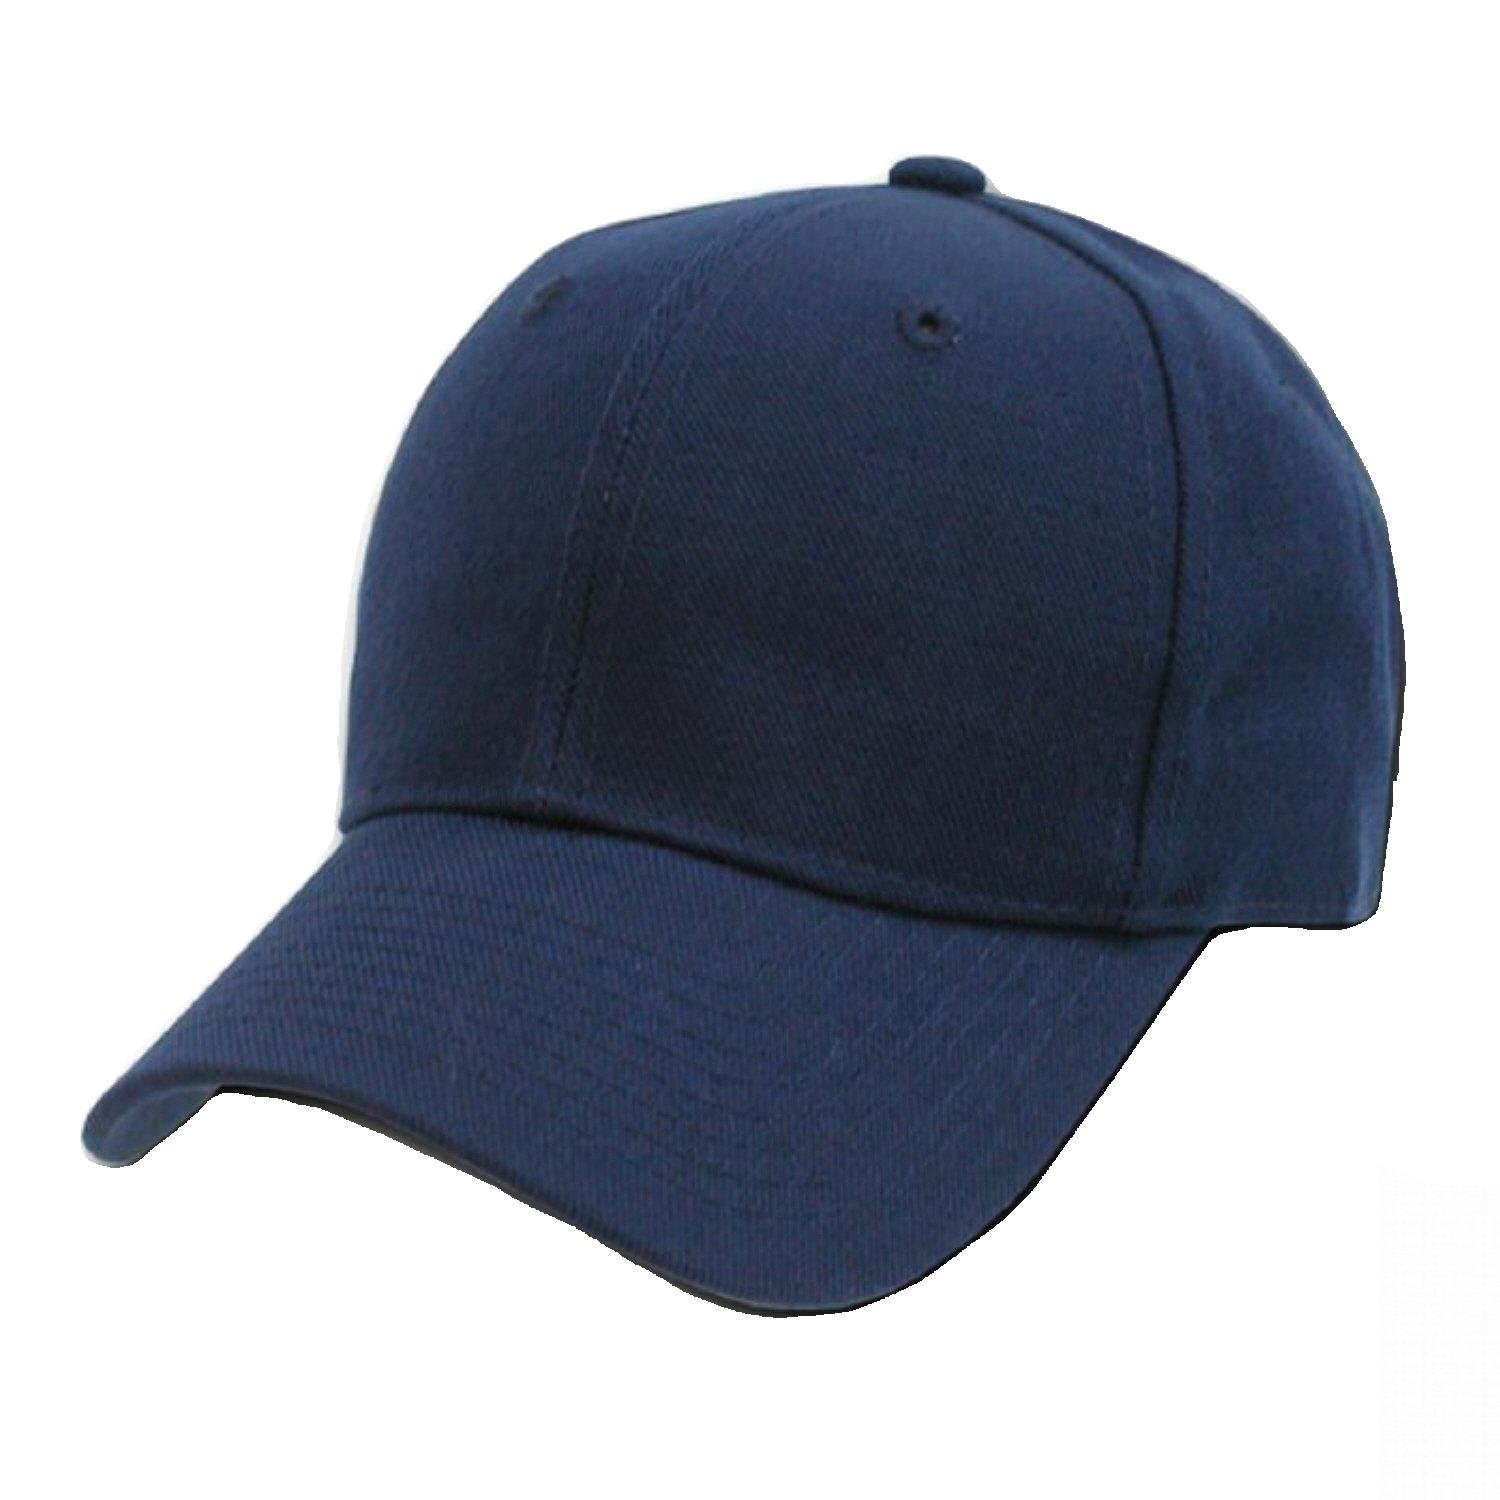 0b58390130f6ef Decky 3 Pack Plain Solid Fitted Baseball Cap Black / White / Navy Blue  (Size 7 1/8) at Amazon Men's Clothing store: